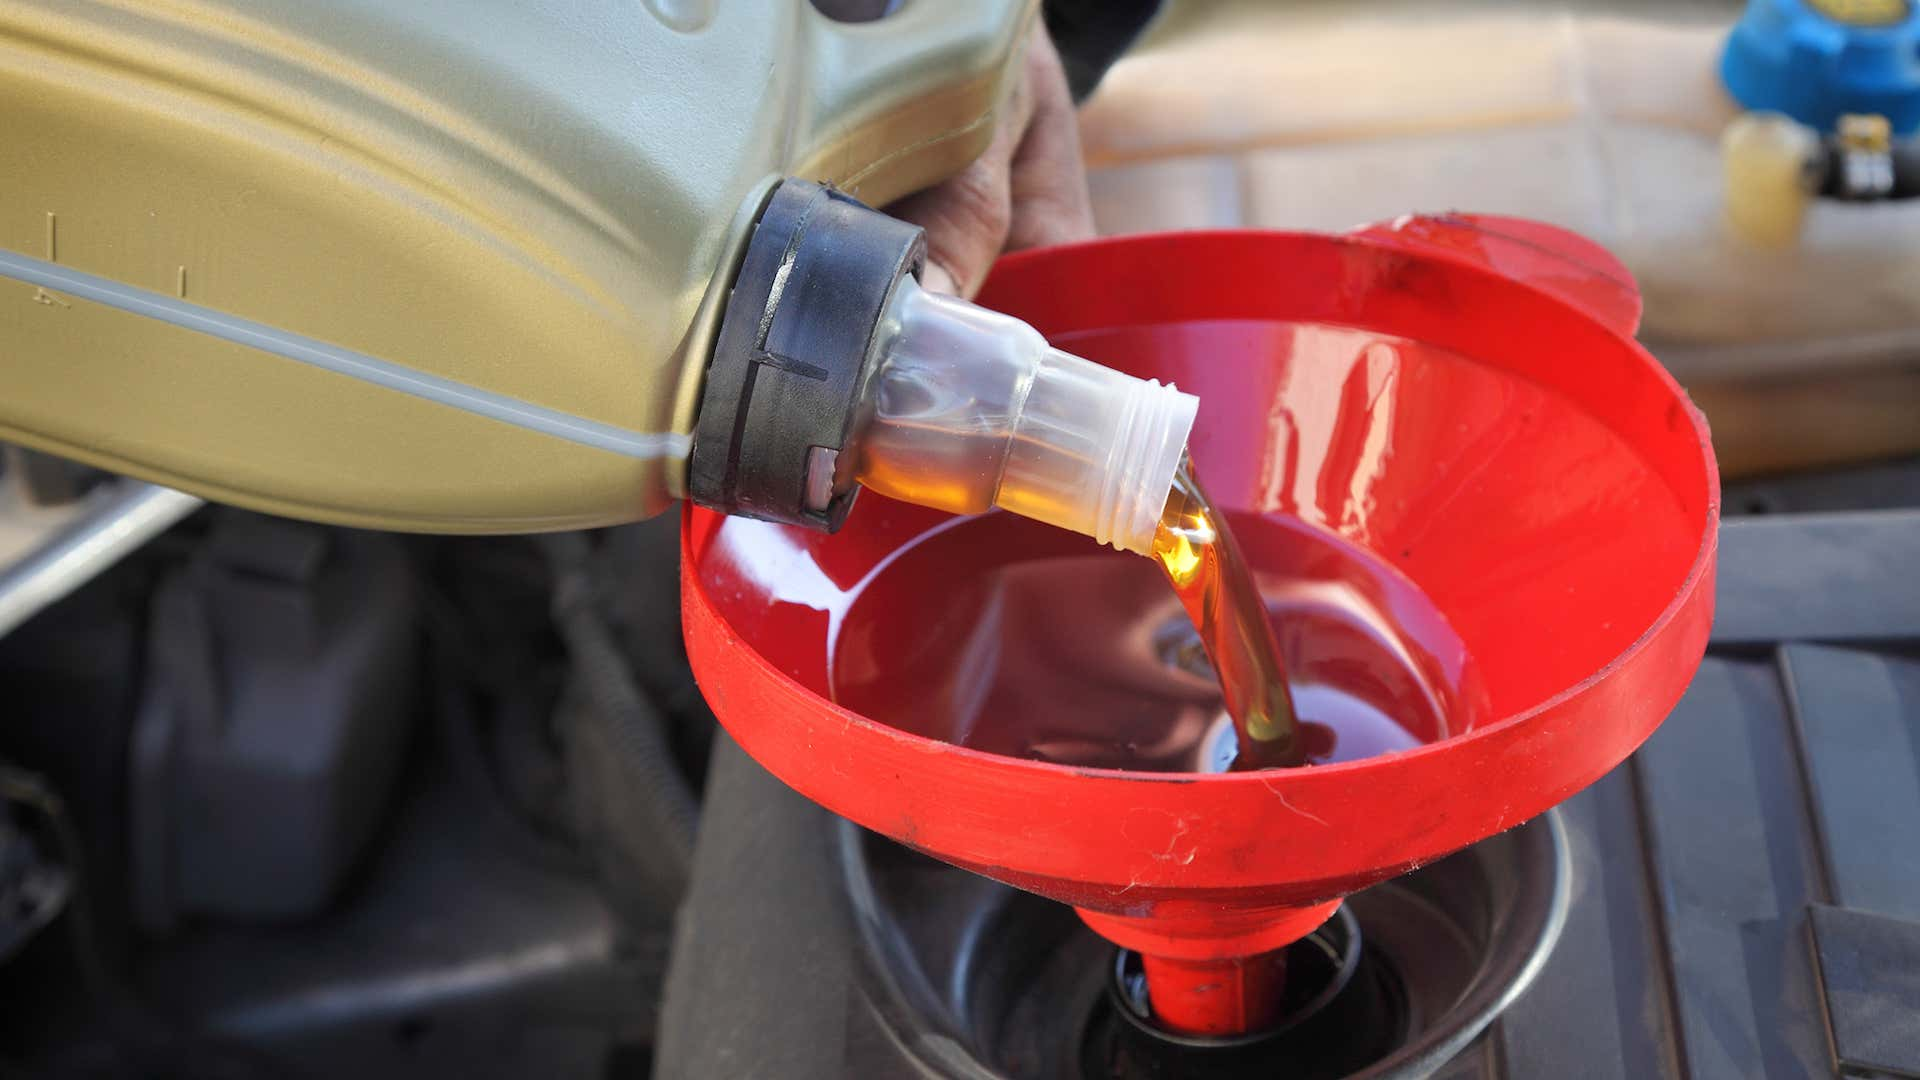 Keep an eye on your car's oil.